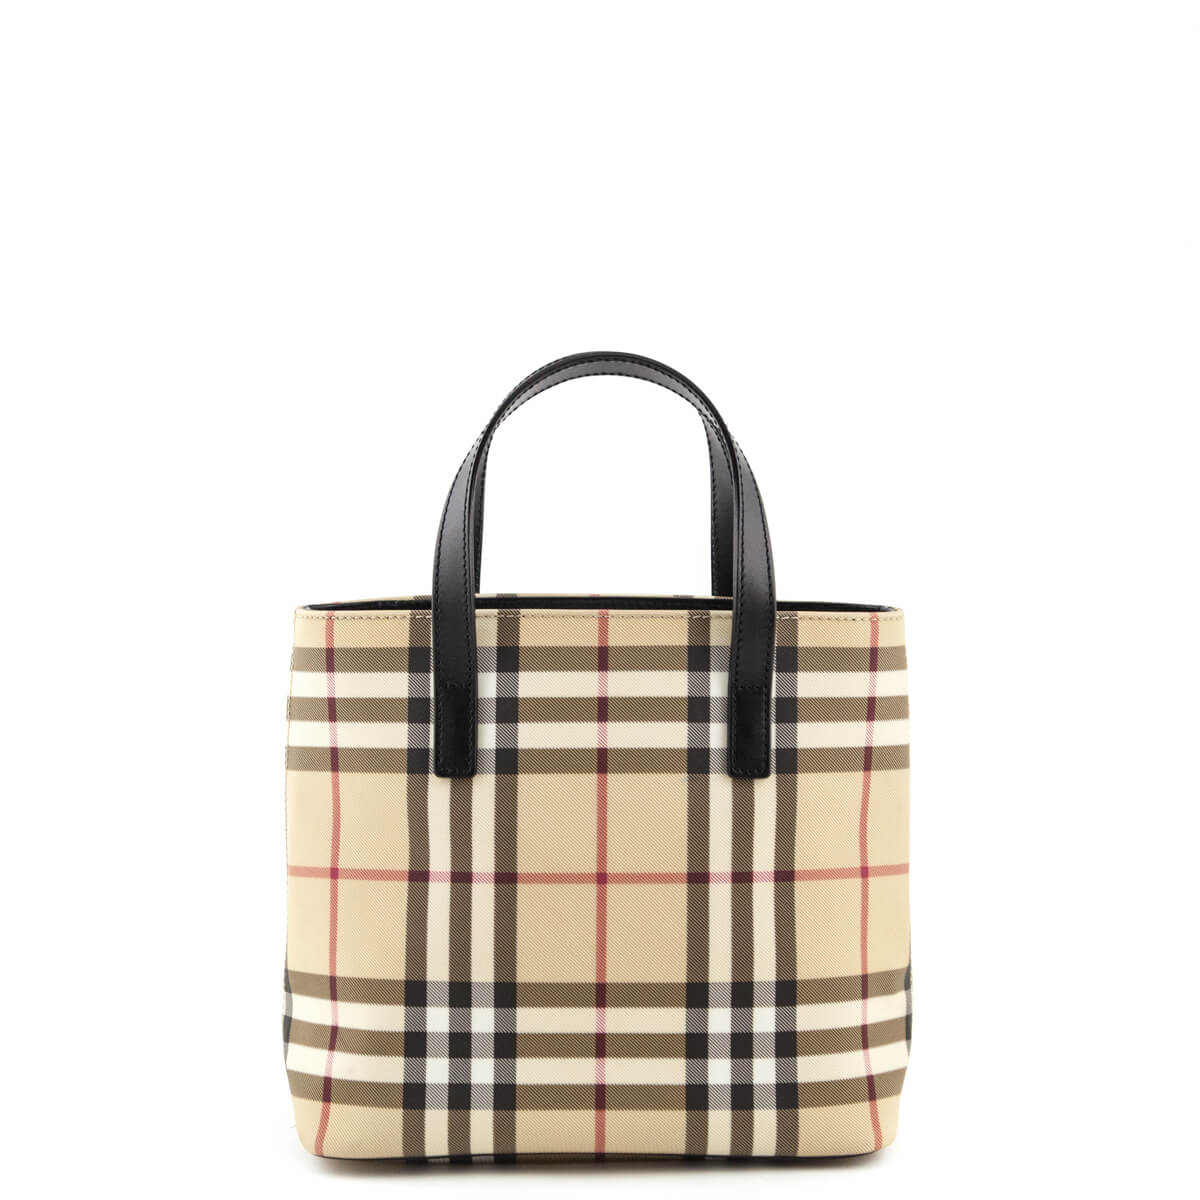 5ab62a5f3e97 Burberry Nova Check Coated Canvas Small Tote Bag - LOVE that BAG - Preowned  Authentic Designer ...